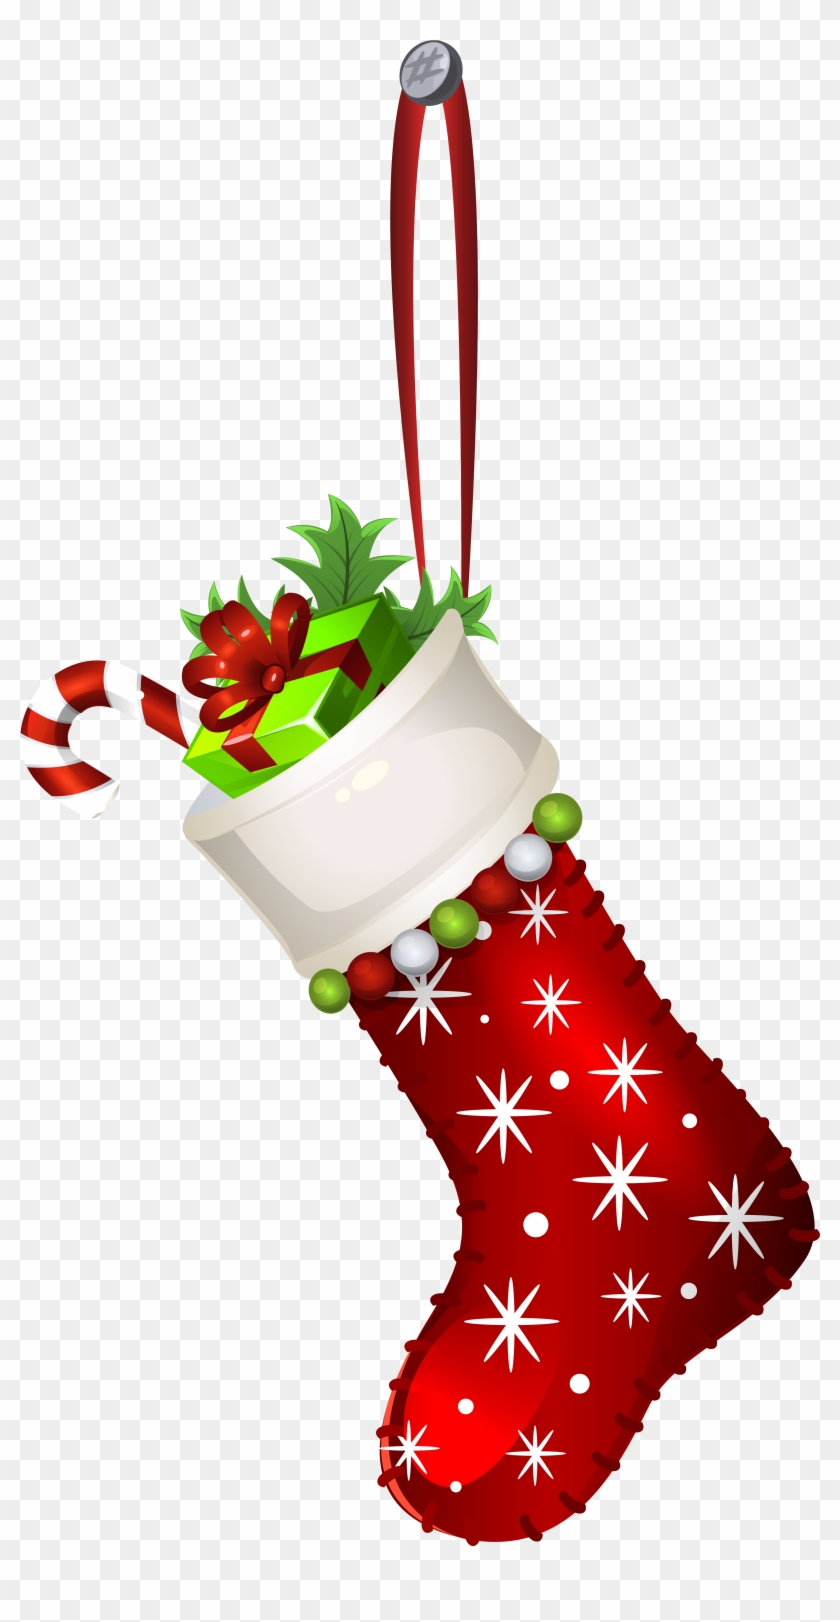 Christmas clipart crown jpg black and white stock Image Result For Christmas Holly Crown Clipart - Christmas Stocking ... jpg black and white stock